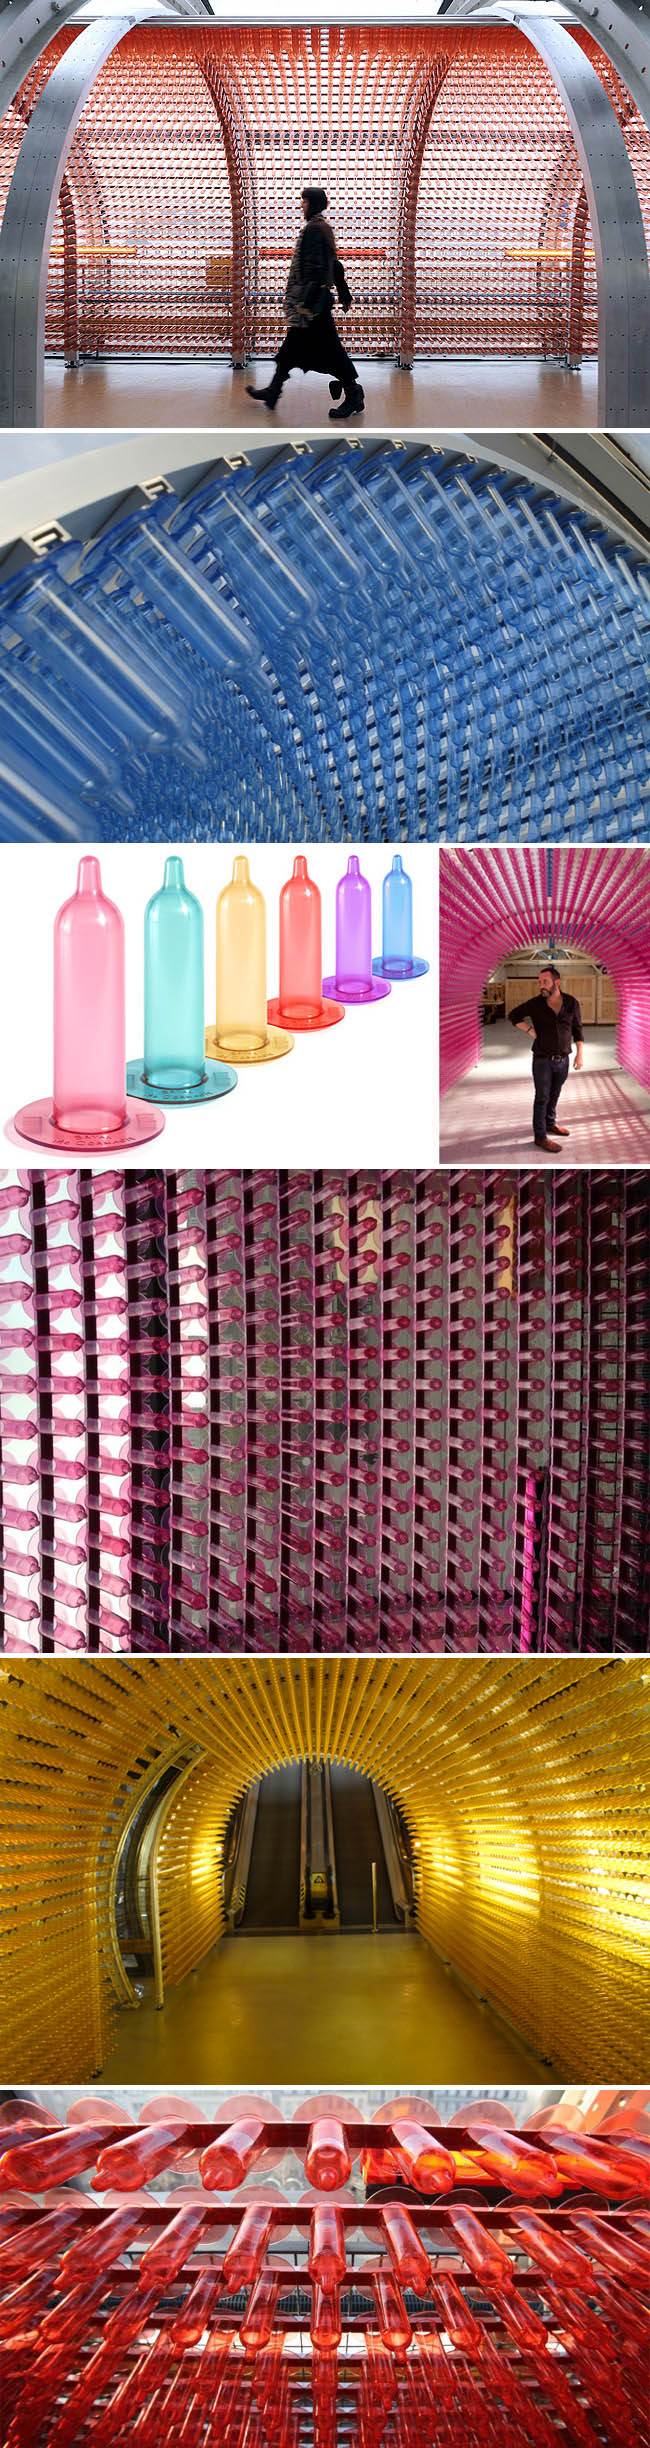 art installation, Pompidou Center, Bryan McCormack, Aids fundraiser, condoms, sound and light installation